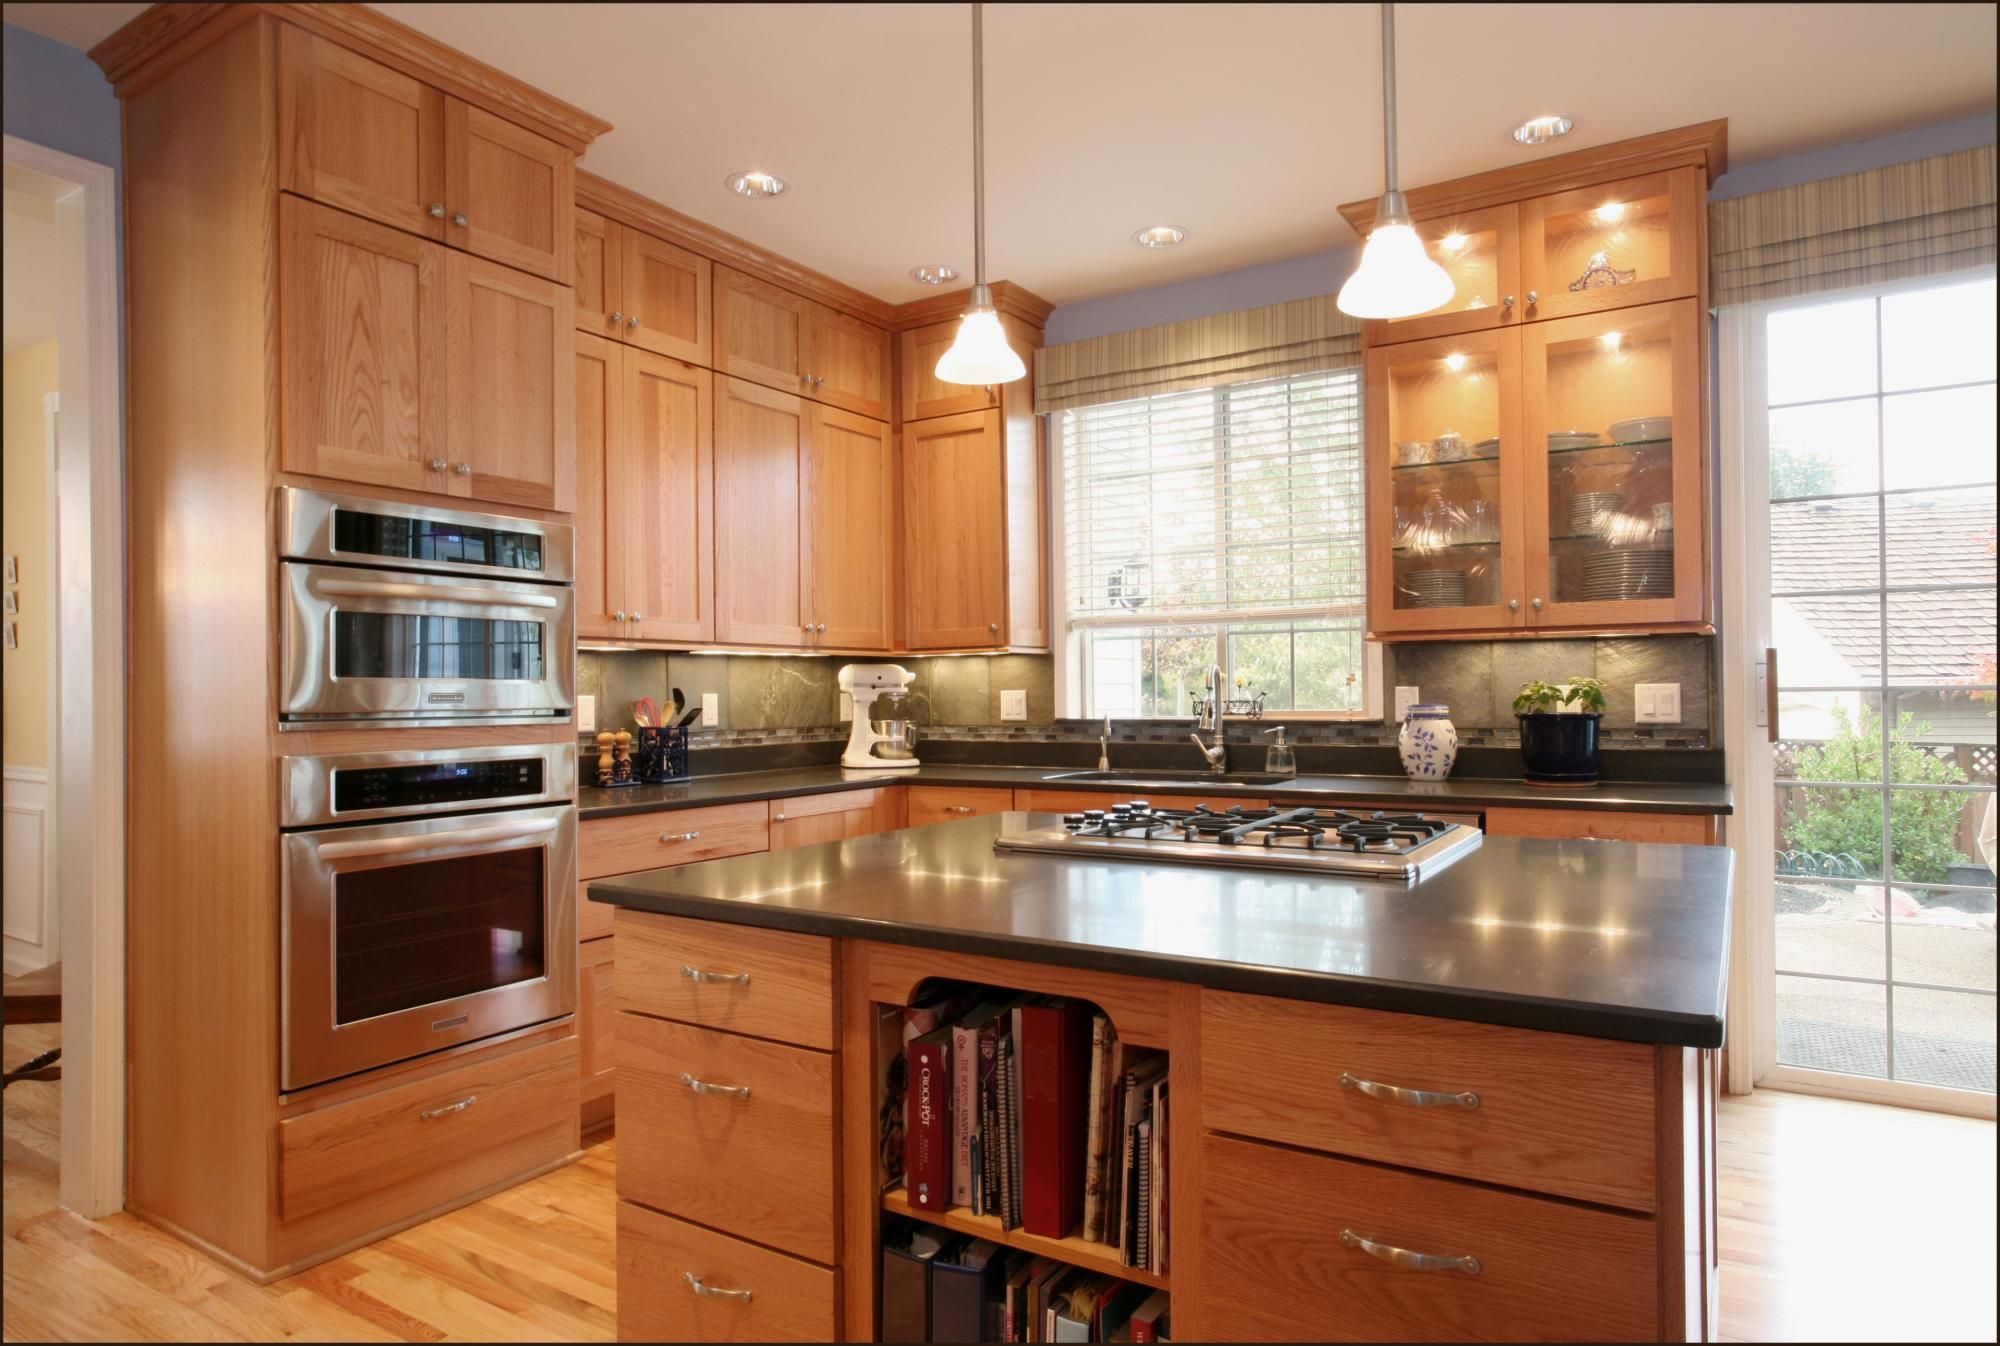 Shaker Style Kitchen with